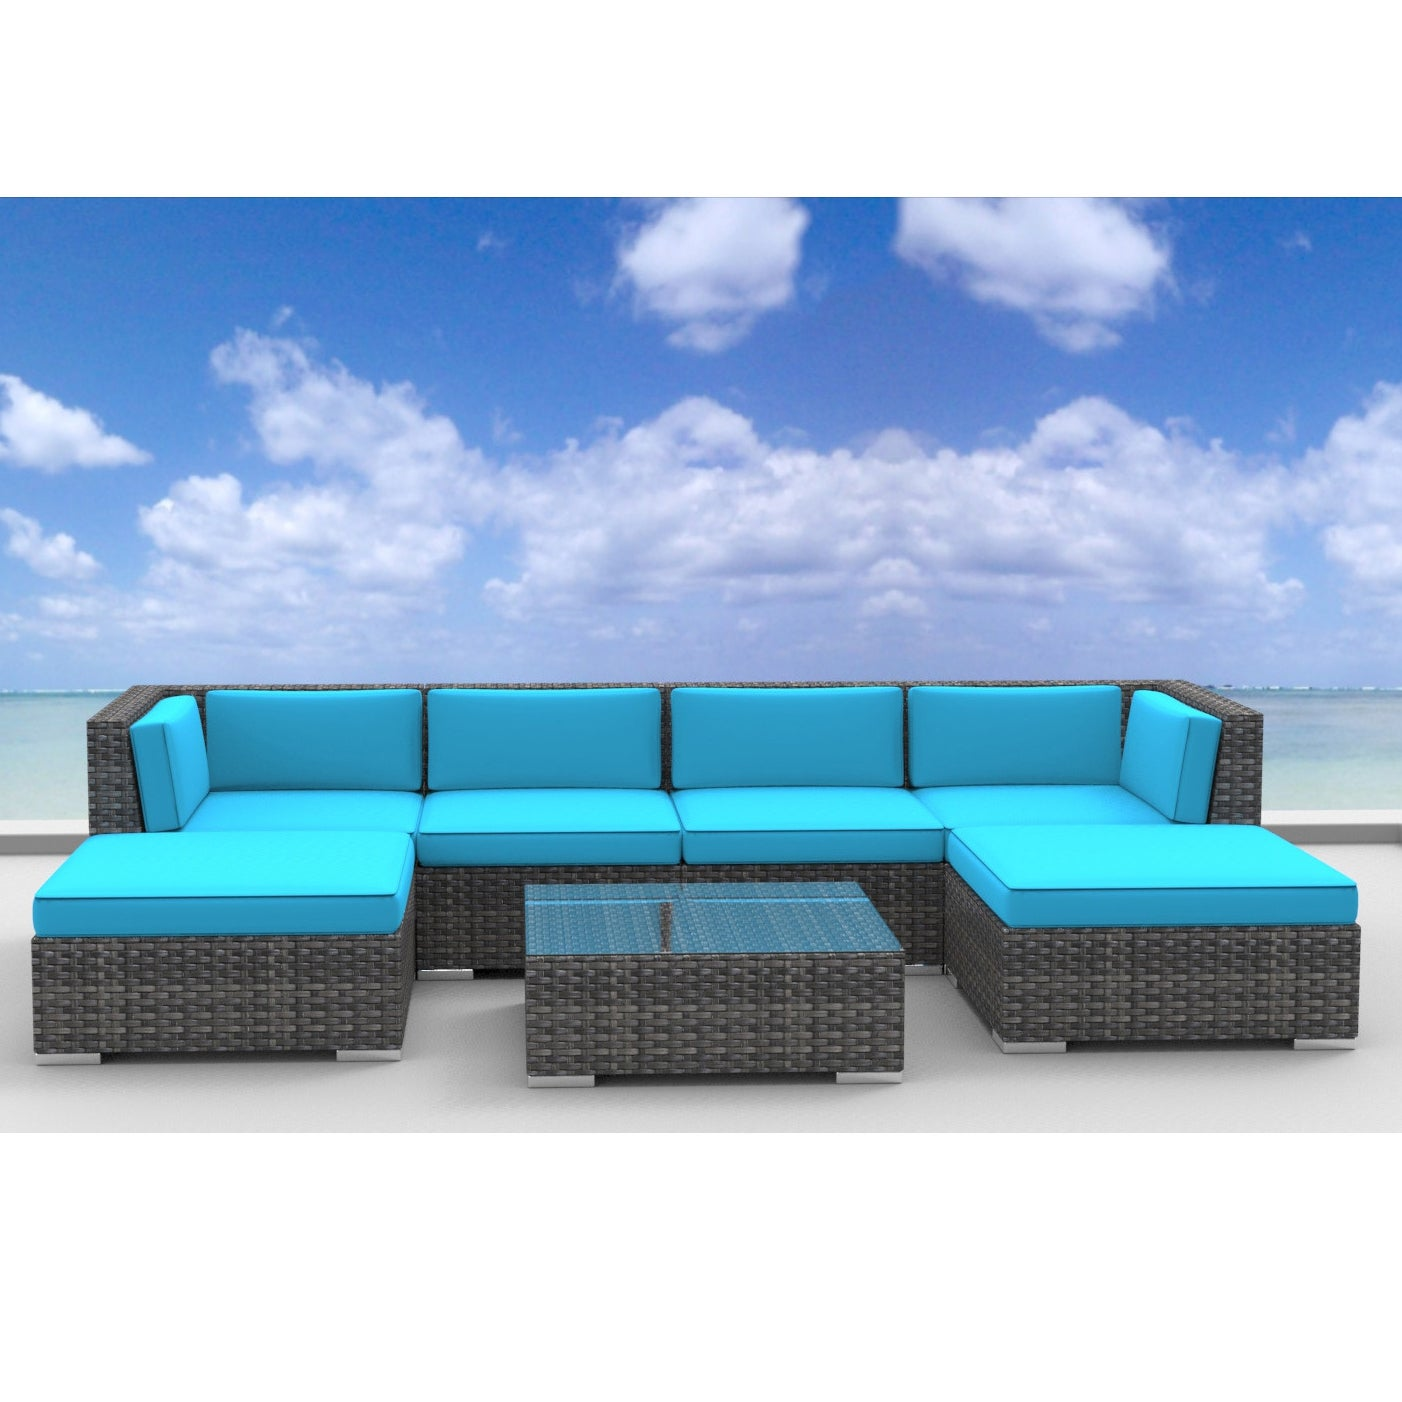 Urban Furnishing Maui Rattan 7 Piece Outdoor Sectional Sofa Patio Furniture Set Free Shipping Today 12017799